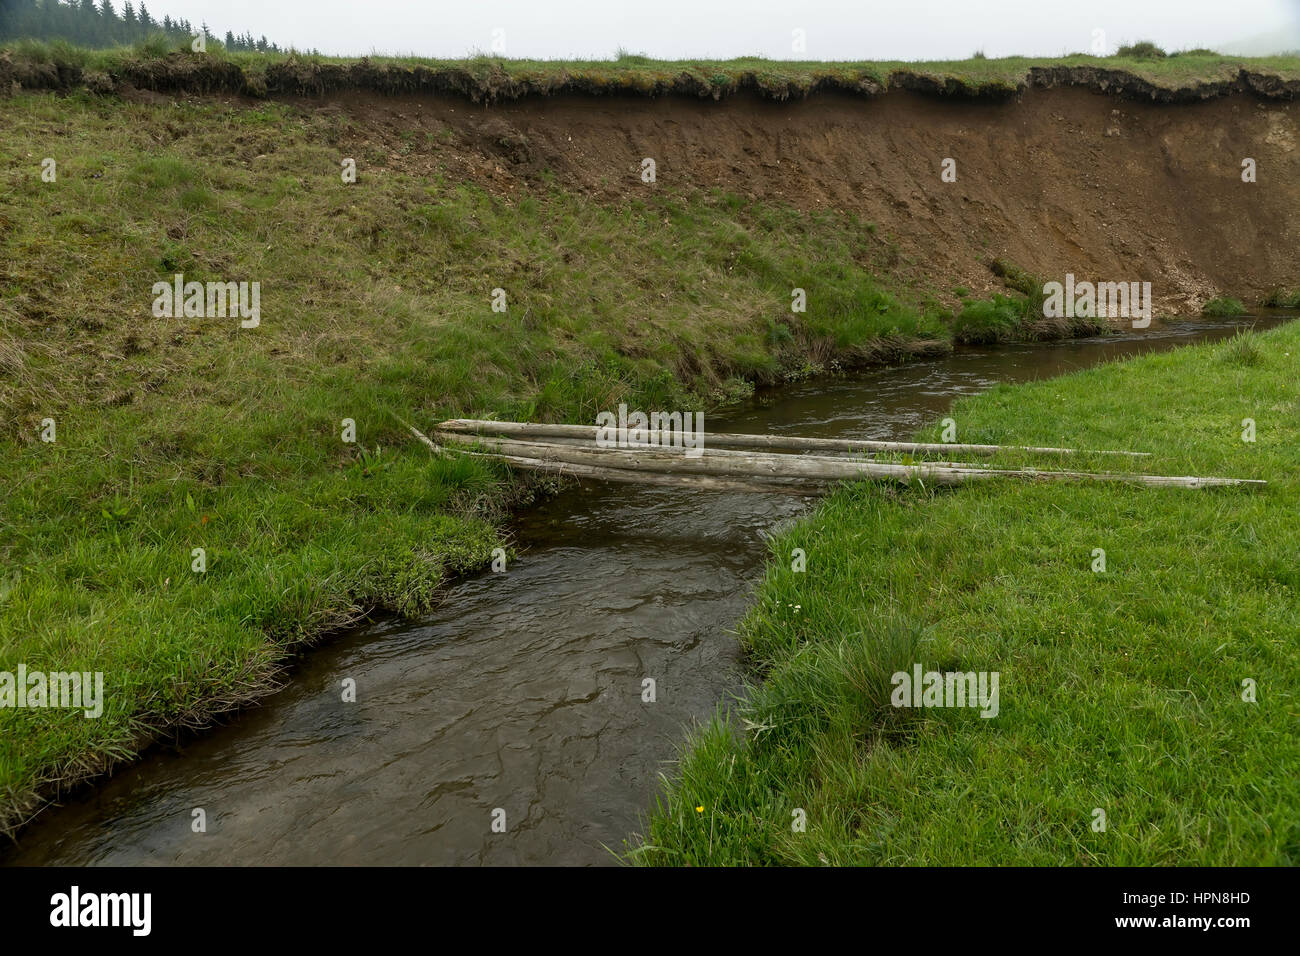 Felled trees as makeshift bridge over a small river Stock Photo